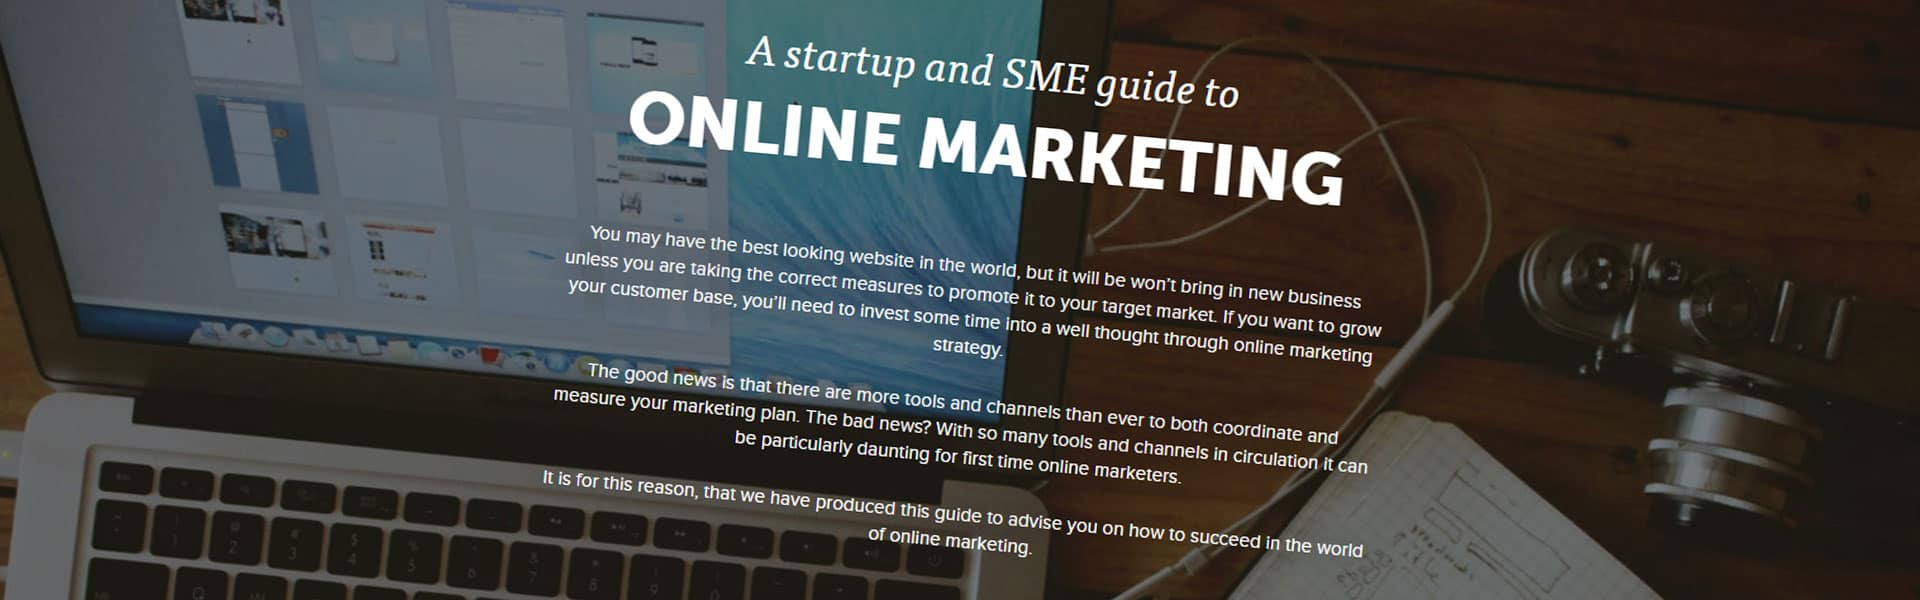 akita guide to online marketing